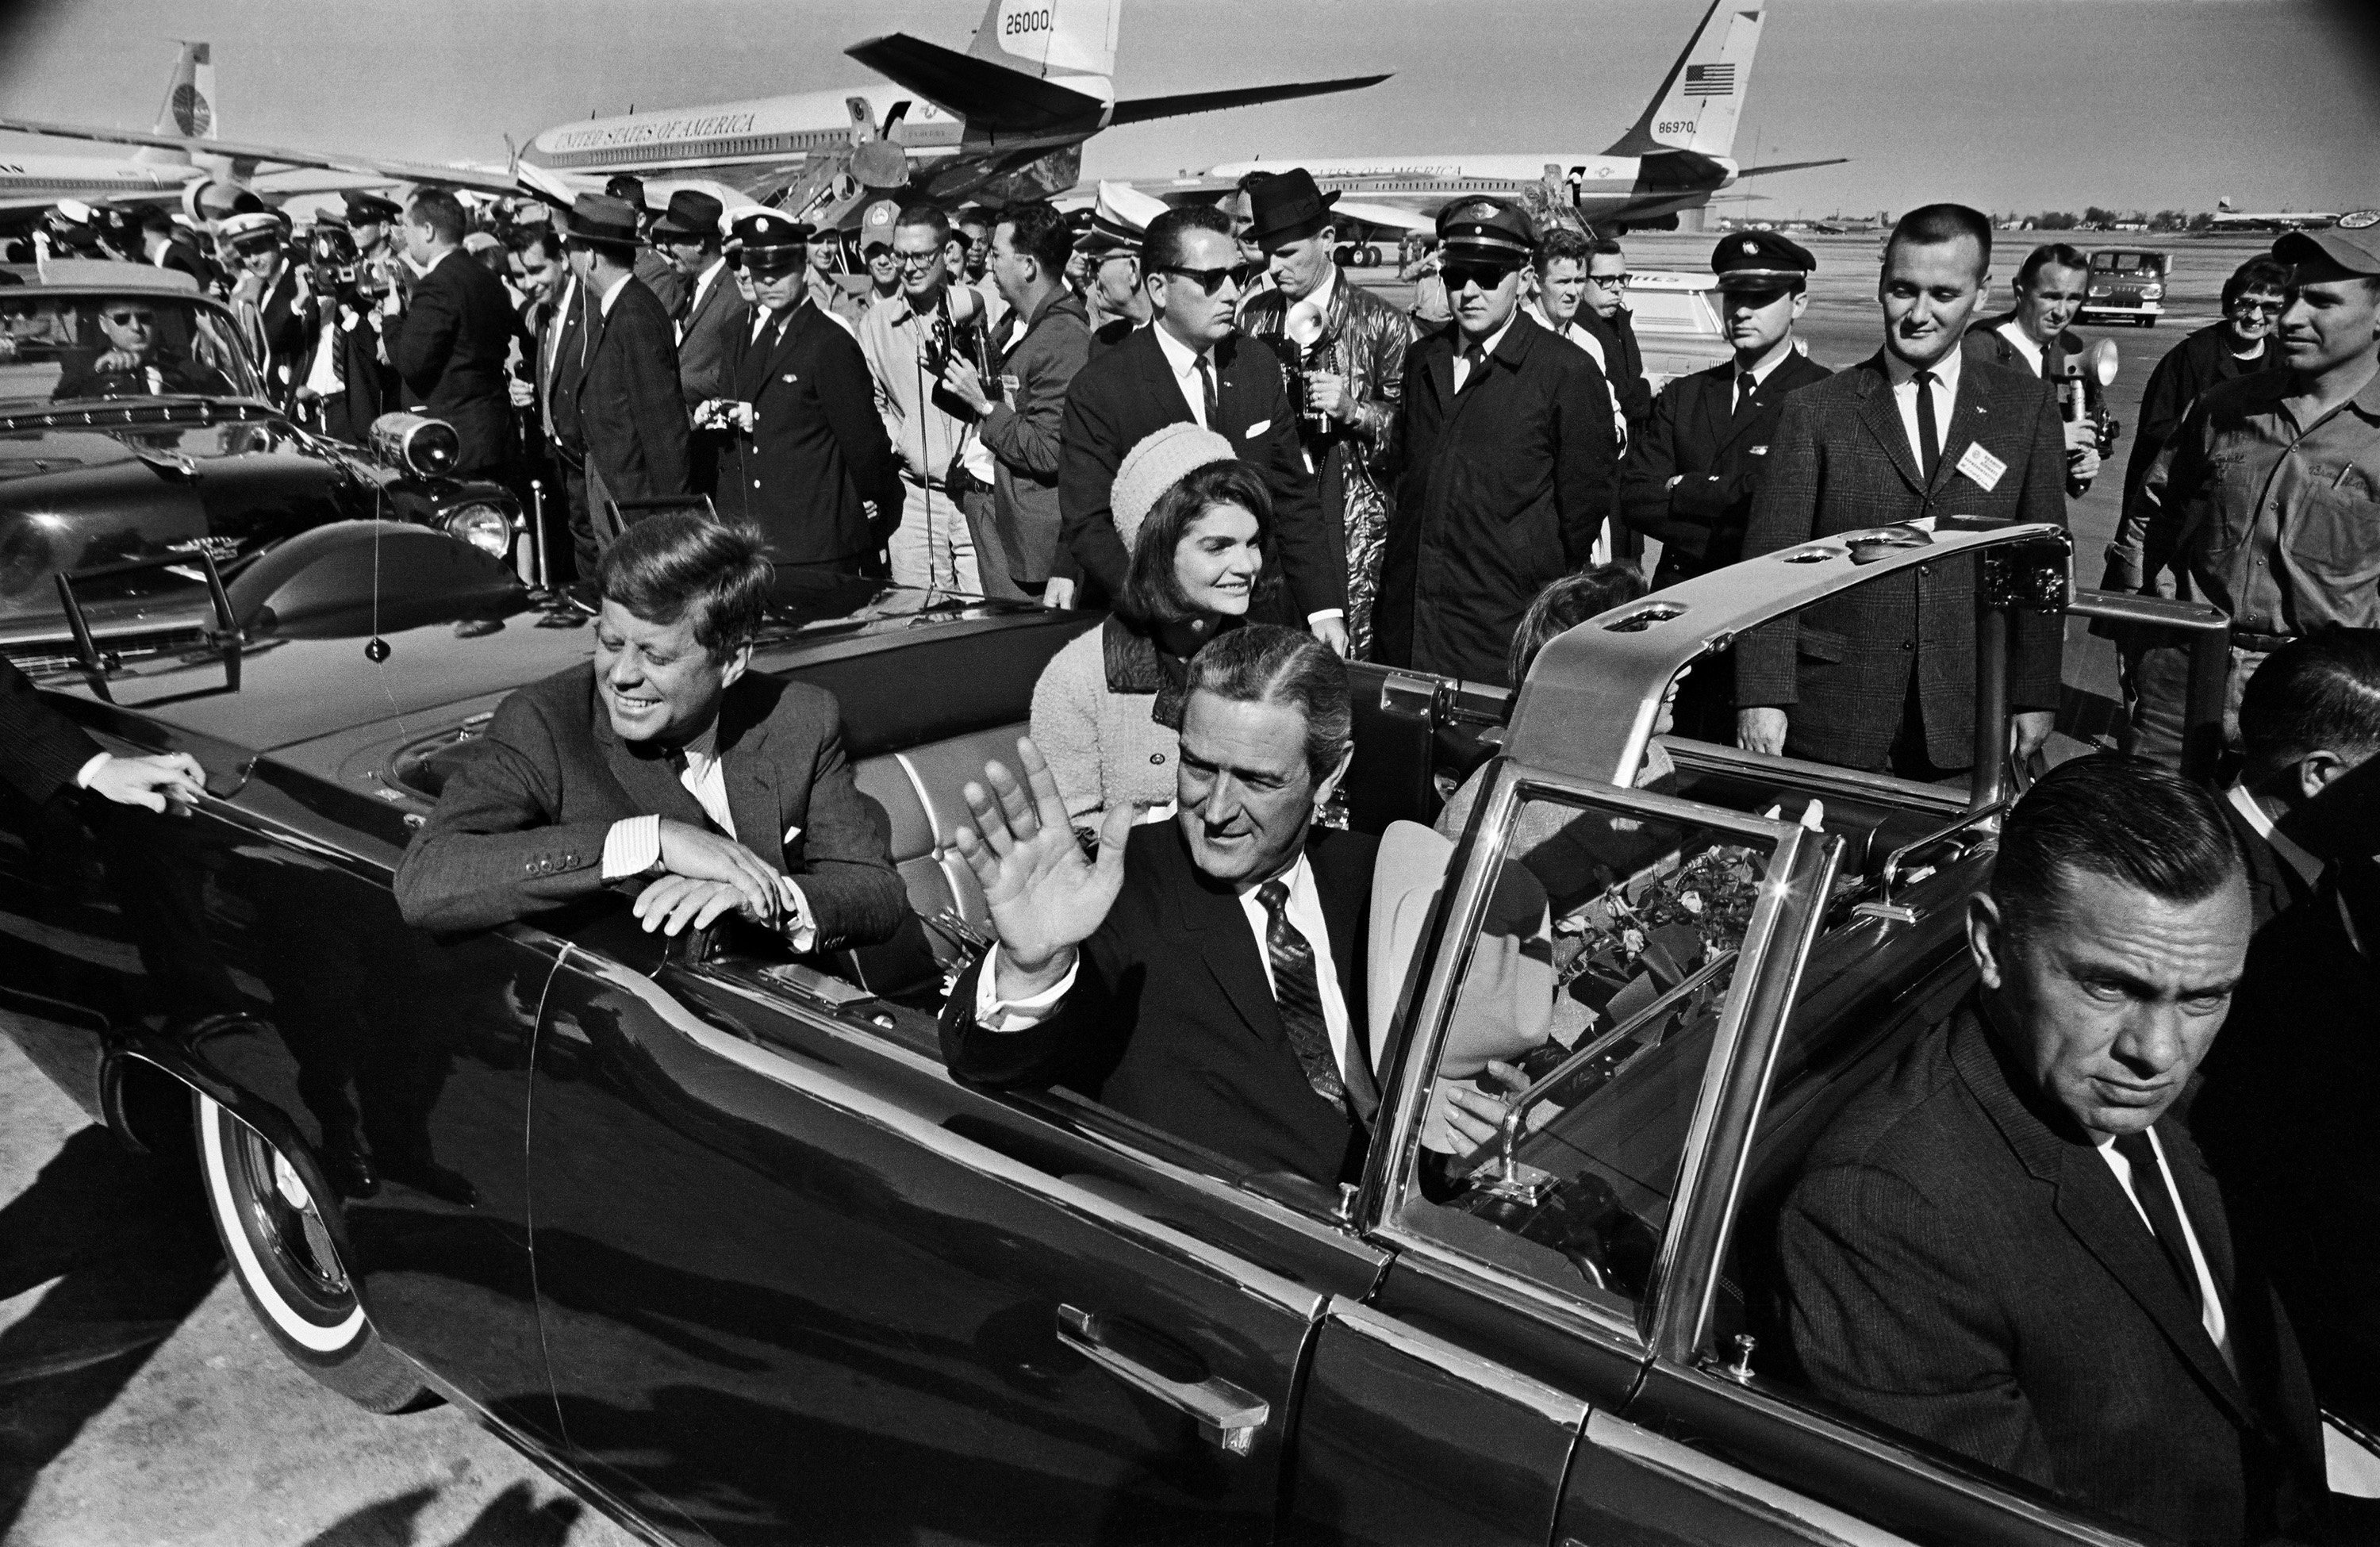 Kennedy assassination date in Perth